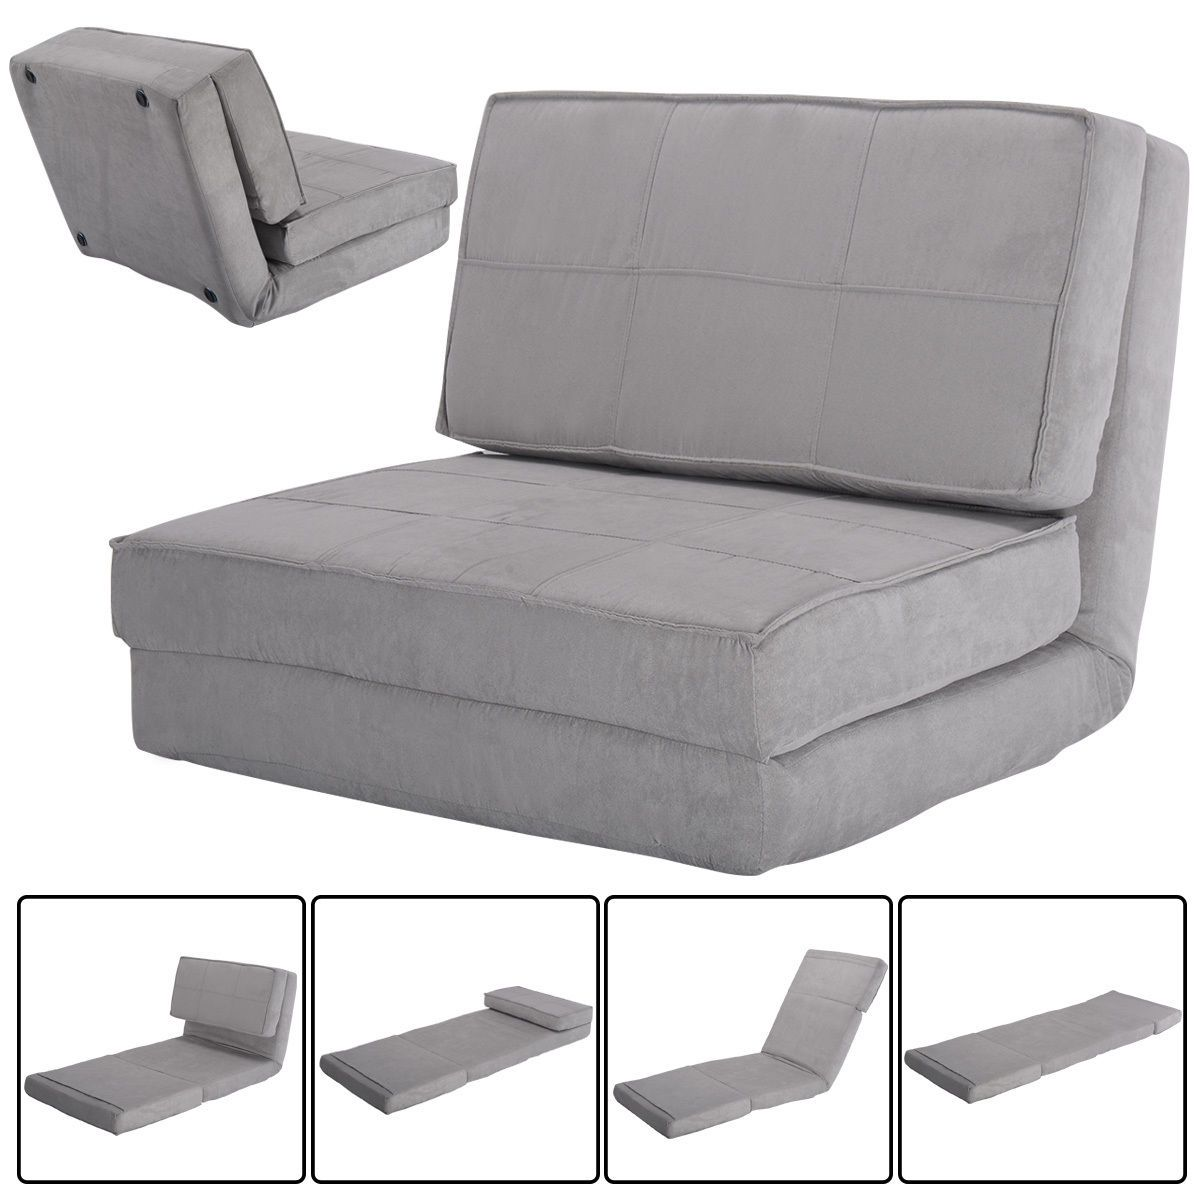 Convertible Lounger Folding Sofa Sleeper Bed In